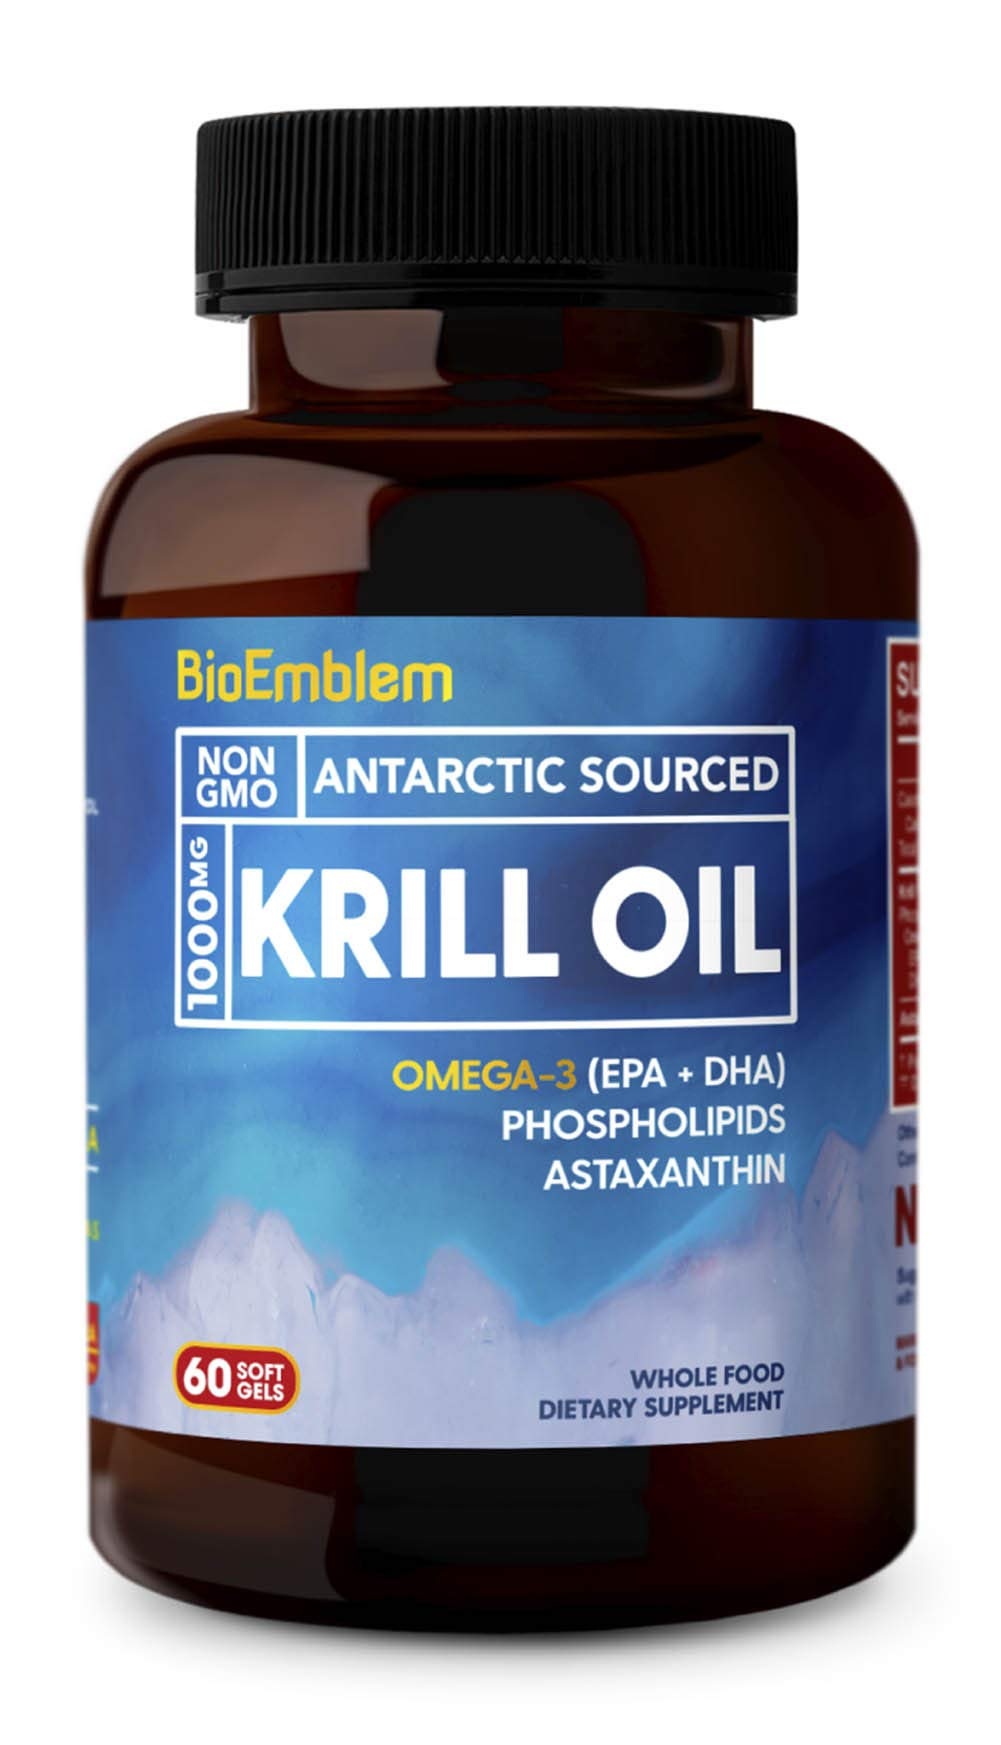 BioEmblem Antarctic Krill Oil Supplement | 1000mg | Omega-3 Oil with High Levels of EPA + DHA, Astaxanthin, and Phospholipids | No Fishy Aftertaste | 60-Count Non-GMO Softgels